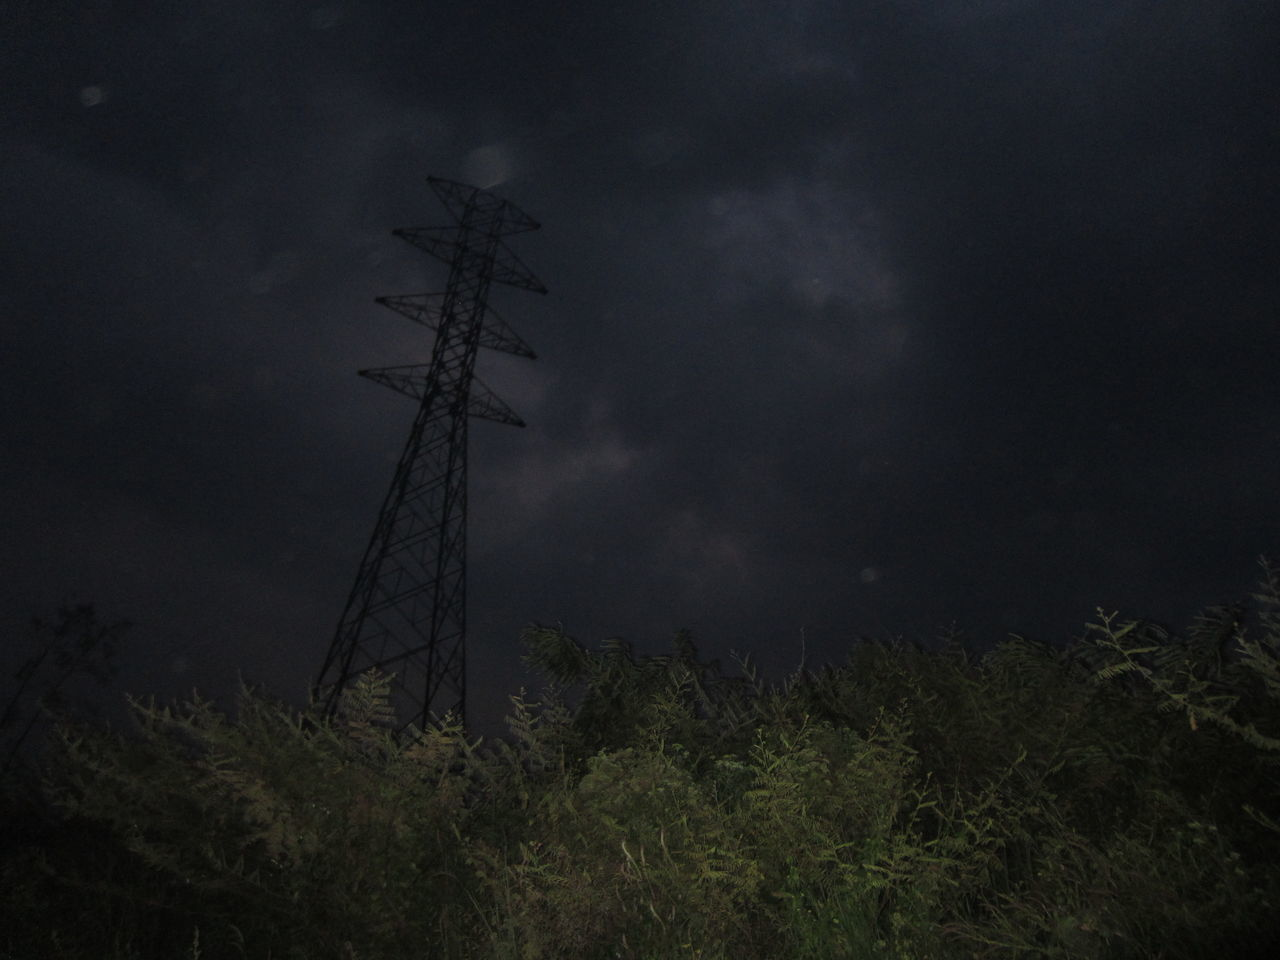 Tree Nature Night Low Angle View Sky Beauty In Nature Landscape Outdoors No People Darkness And Light Tower Electric Tower